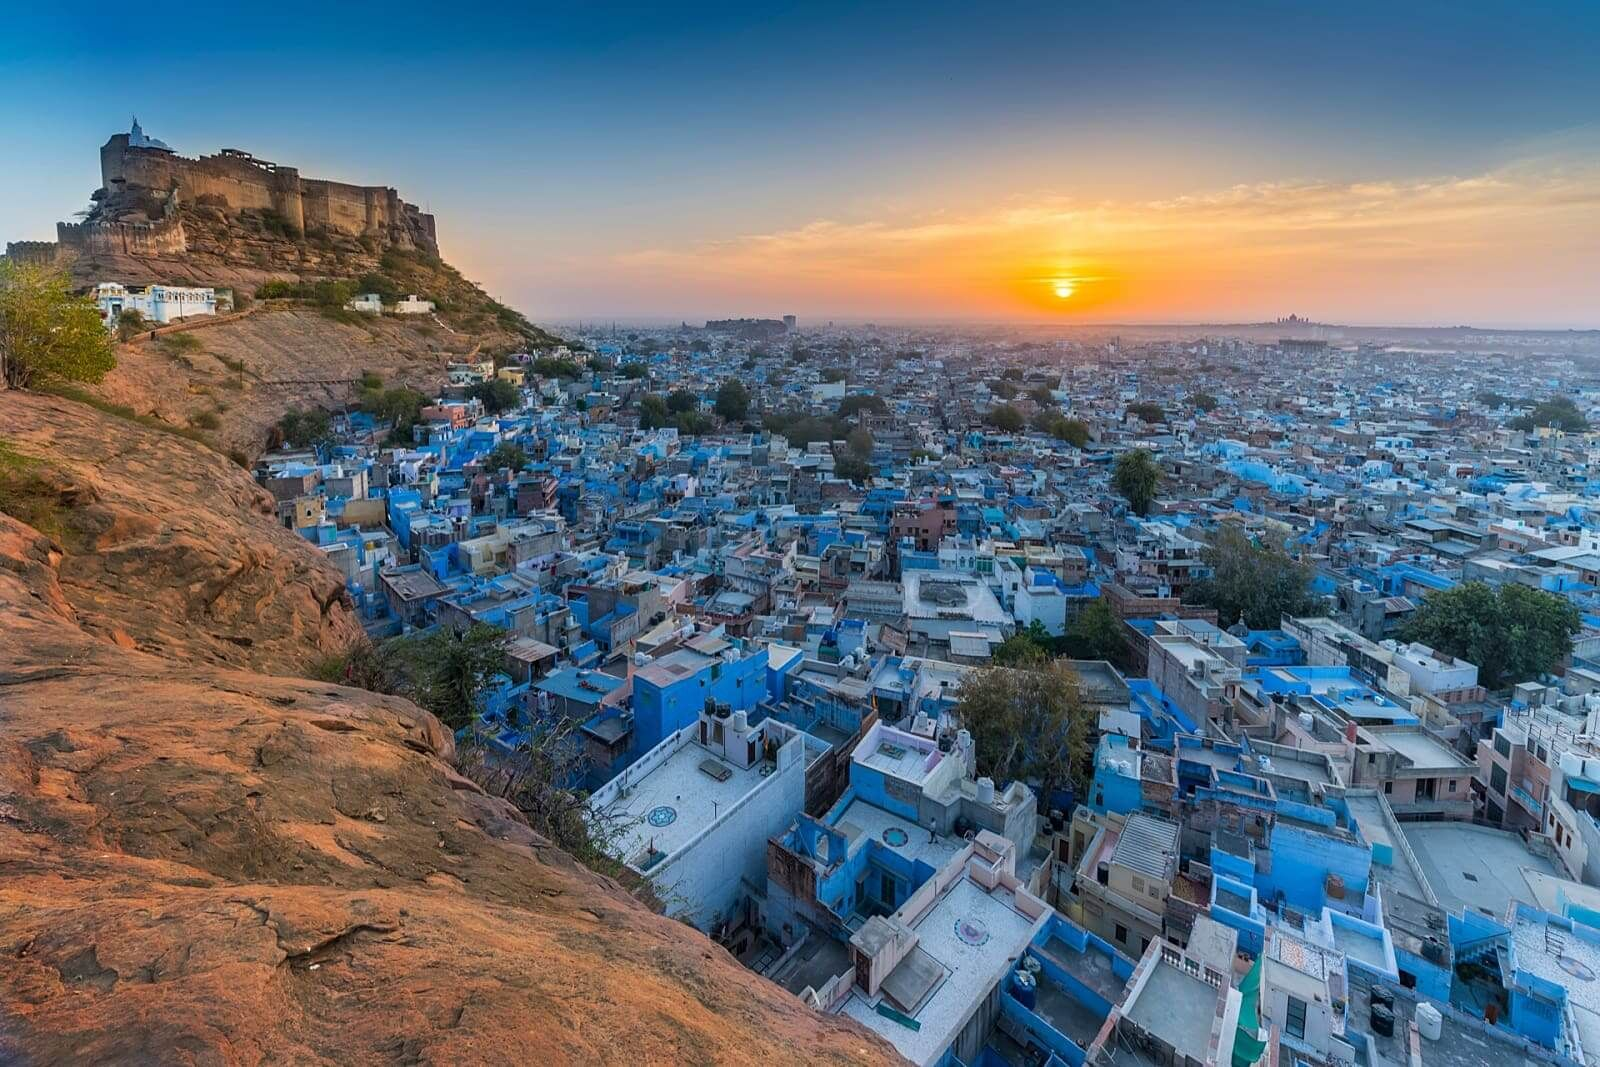 The city of Jodhpur, a bustling city in the Indian state